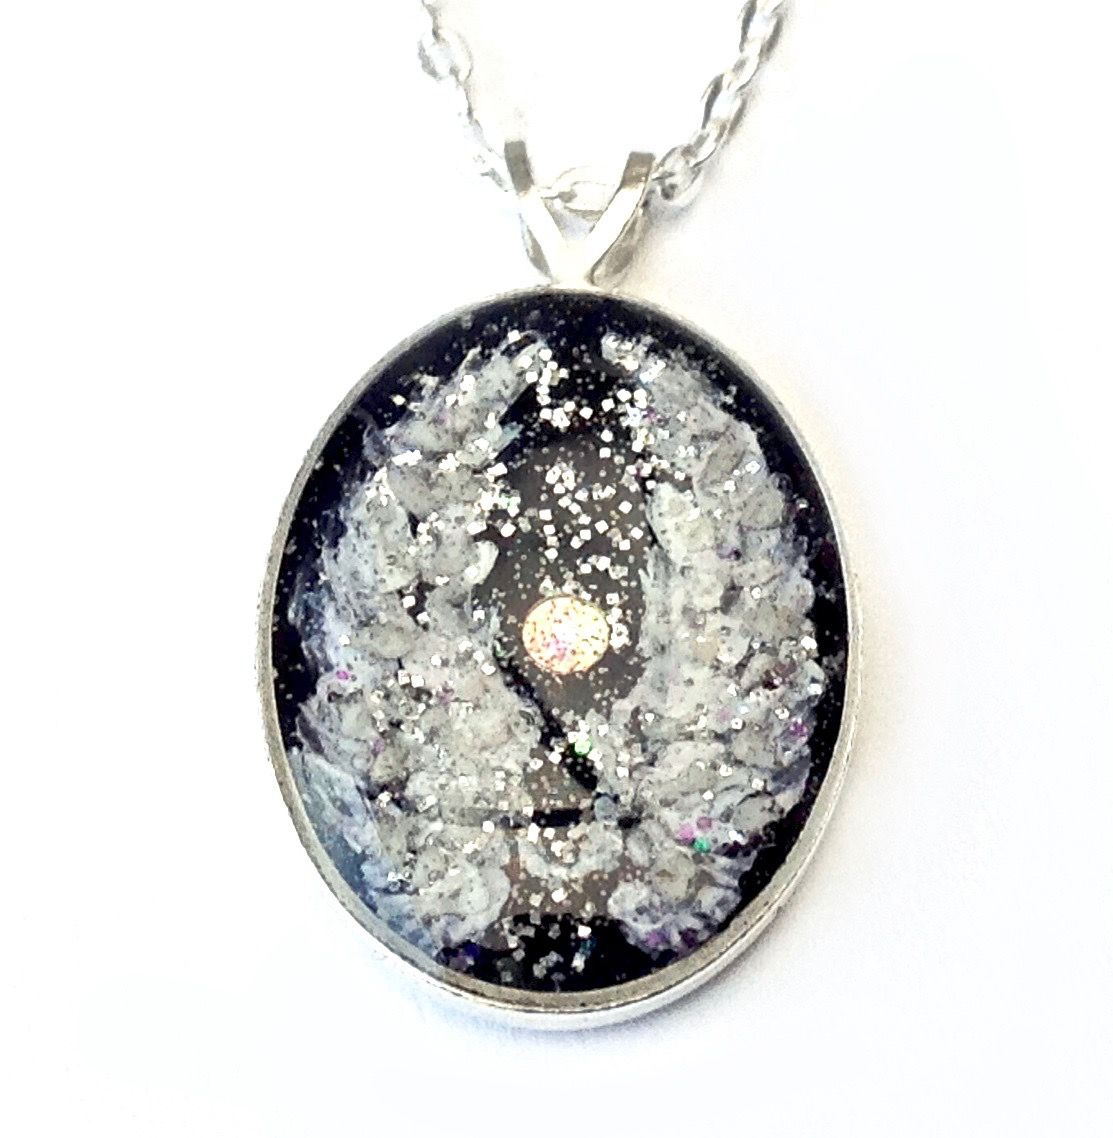 Pin by Tyann Haviland on diy pretties Ashes jewelry